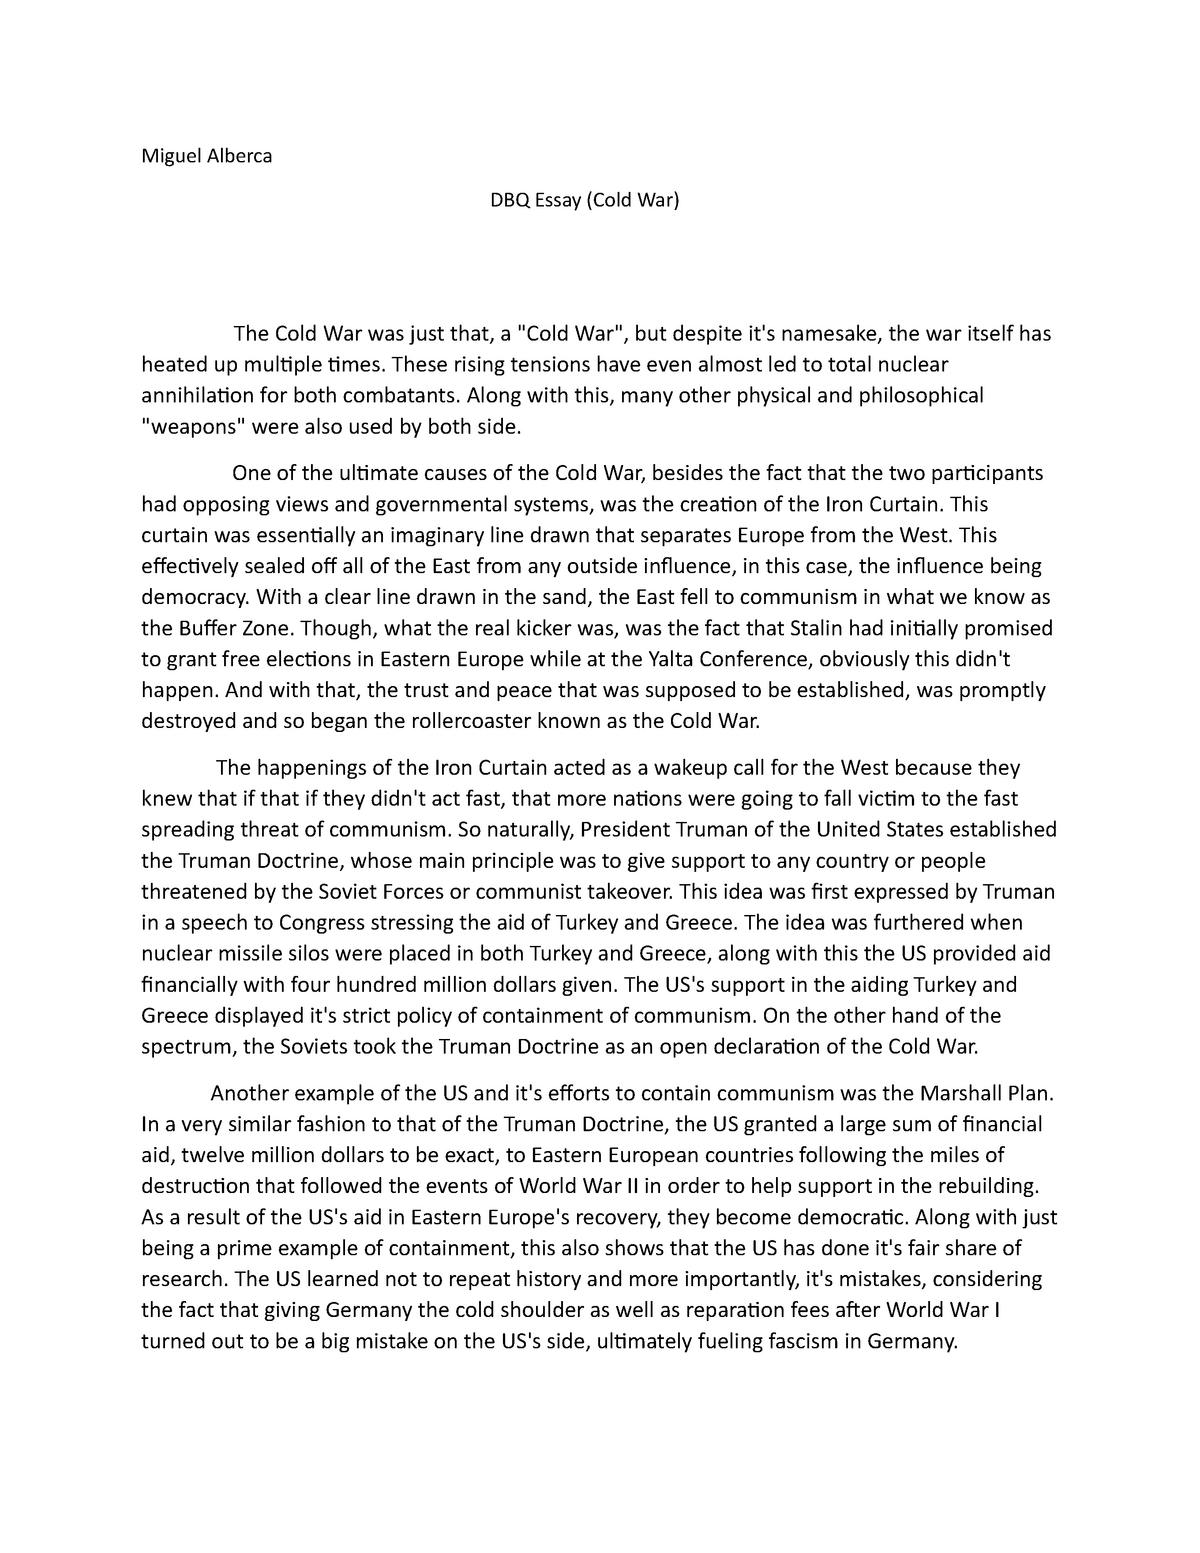 Essays on causes of cold war introduction example for report